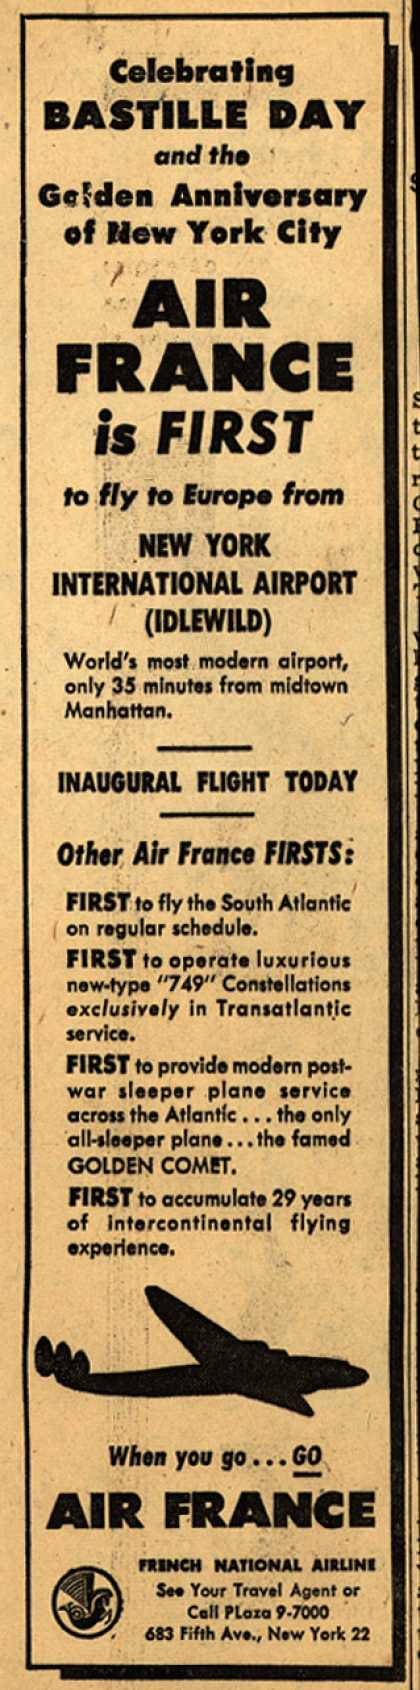 French National Airline's Europe from New York International Airport – Celebrating Bastille Day and the Golden Anniversary of New York City: Air France is First (1948)